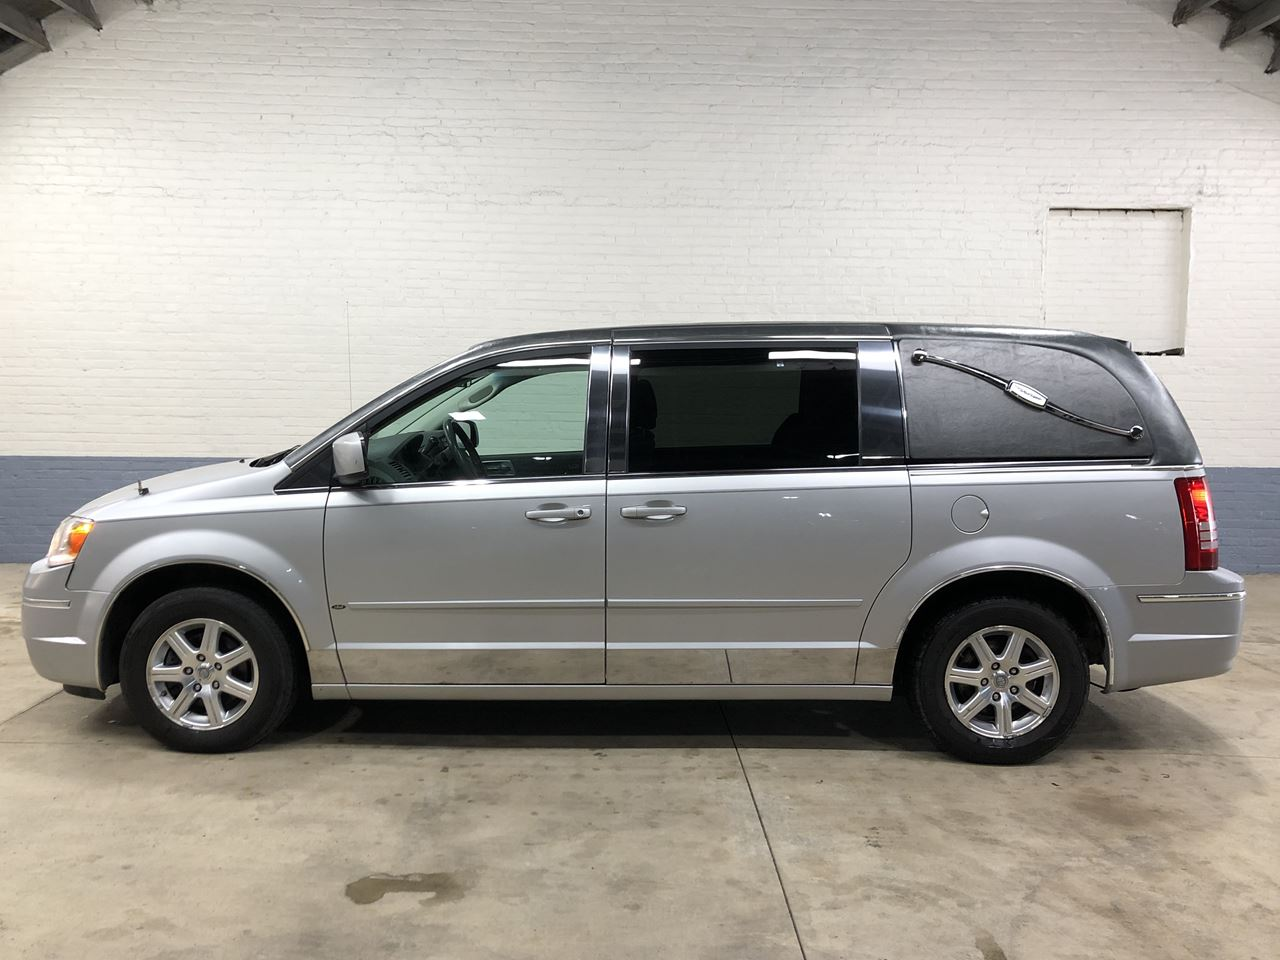 2008 Chrysler Eagle 1st Call Van Van